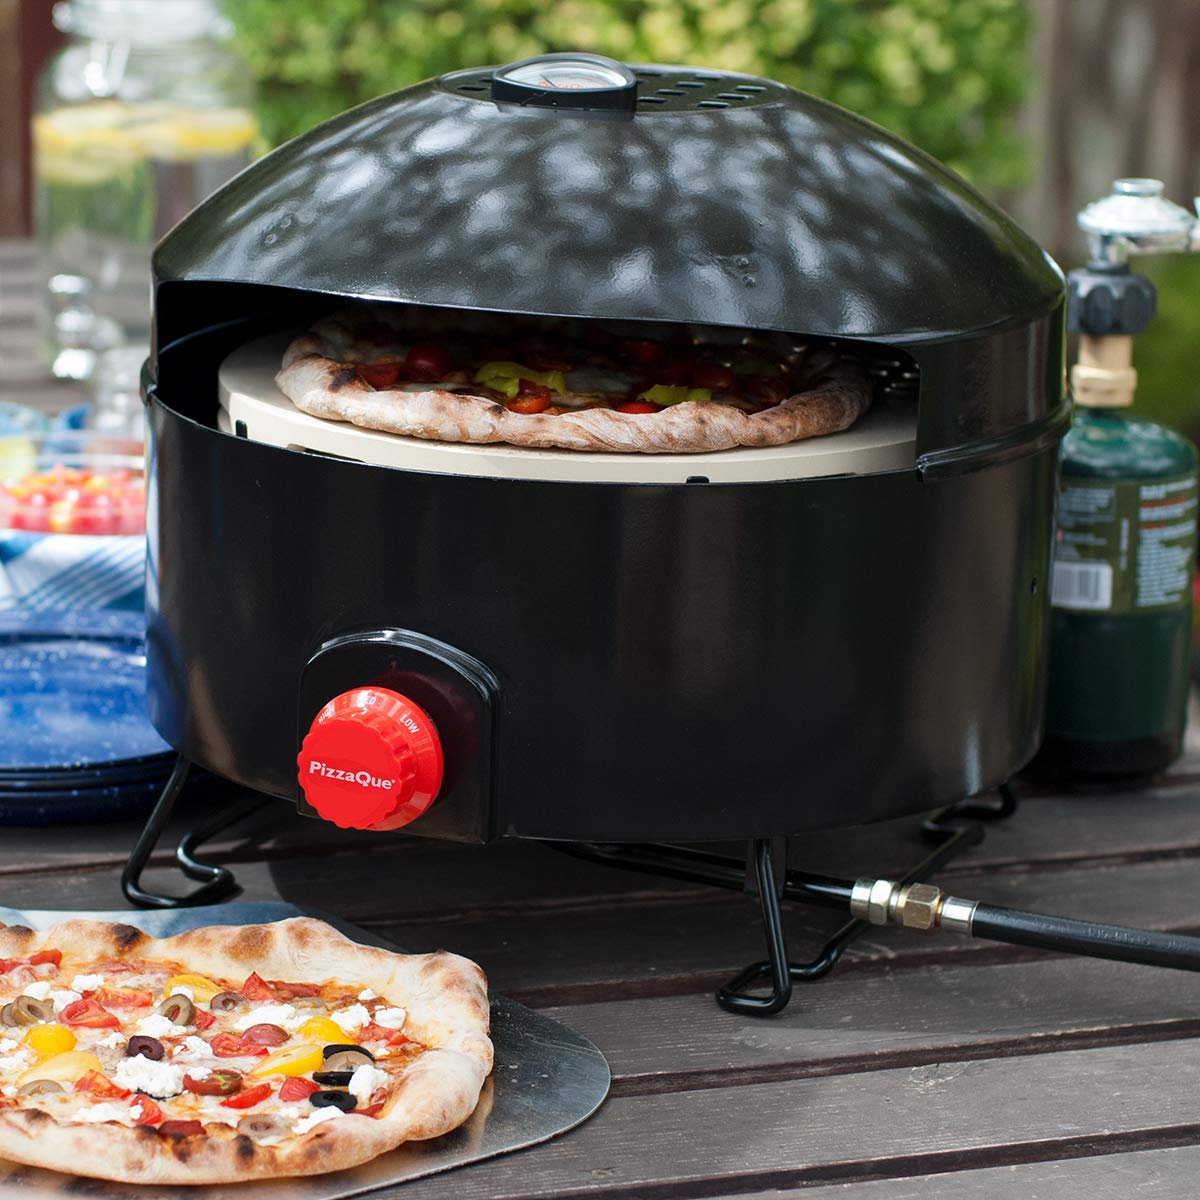 In just 15 mins, your perfect pizza will be ready! (Photo via Amazon)